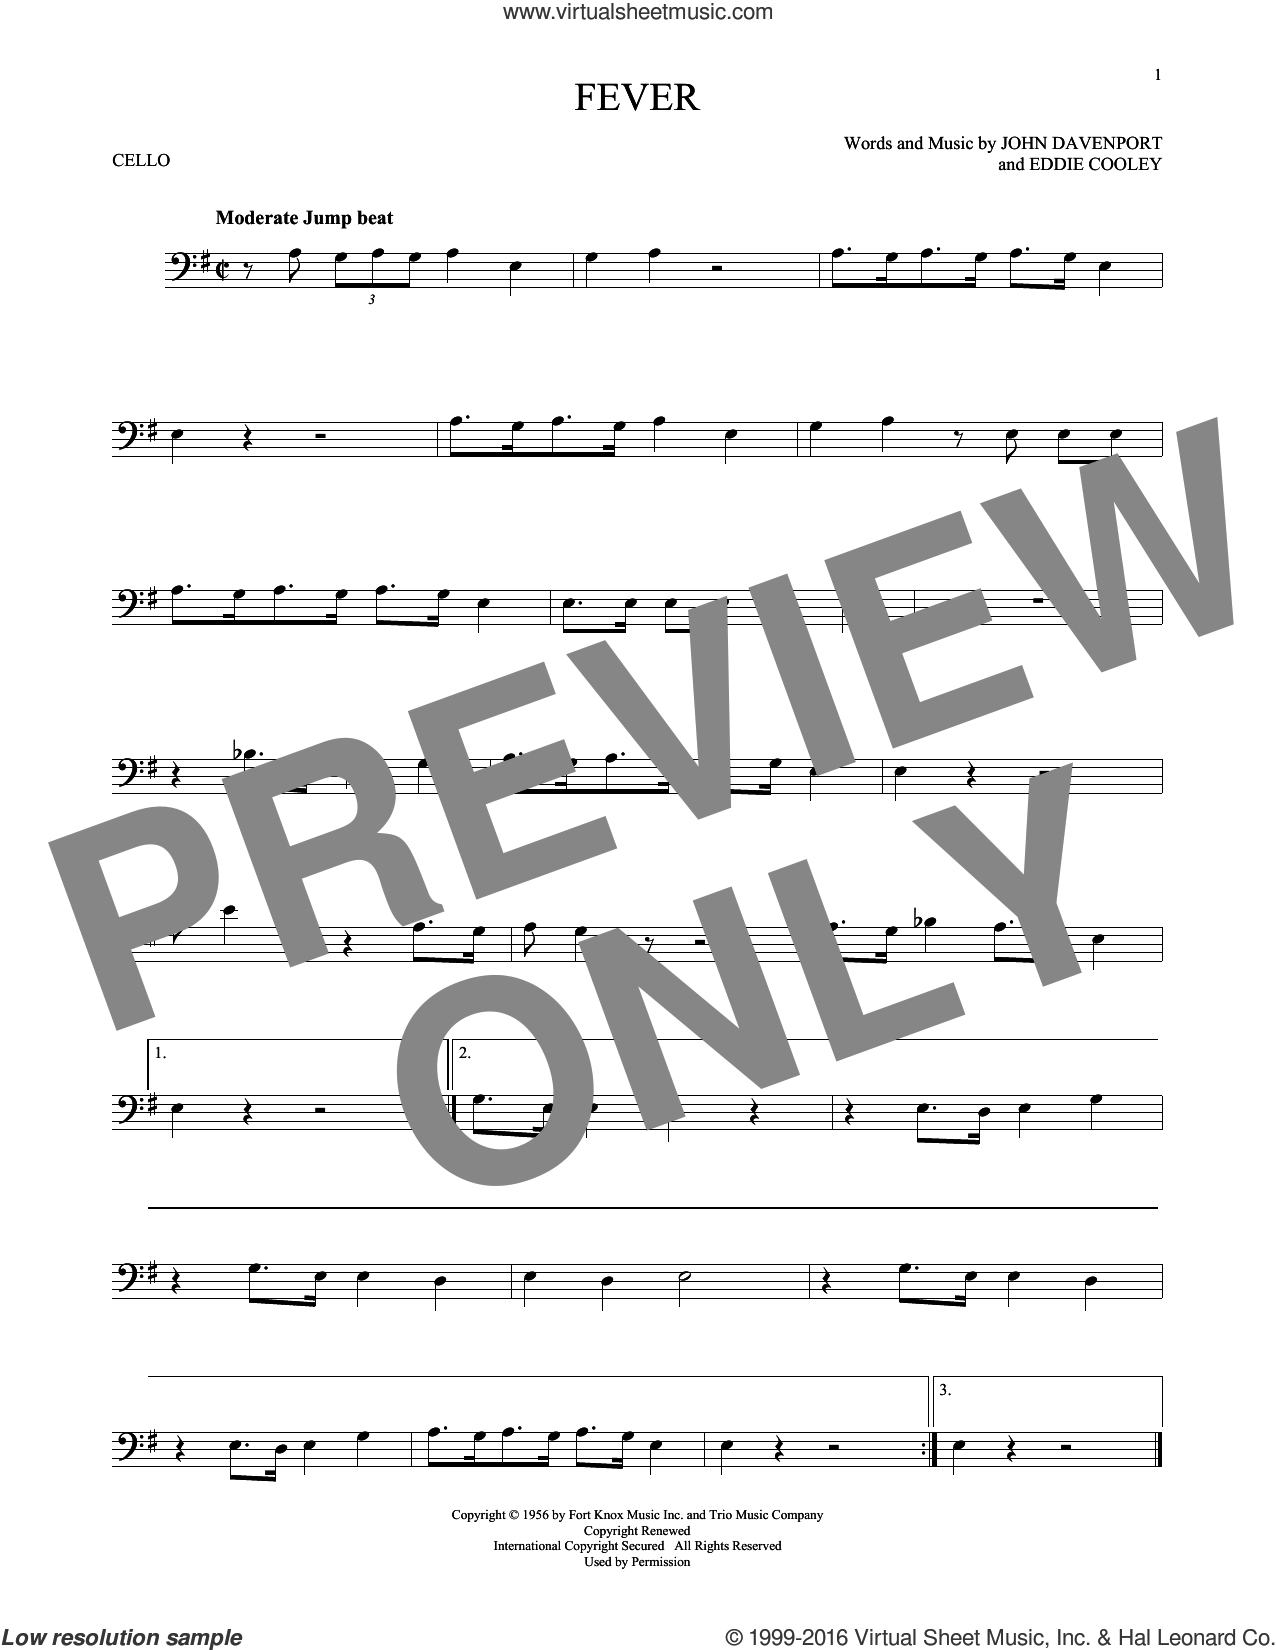 Fever sheet music for cello solo by Peggy Lee, Eddie Cooley and John Davenport, intermediate skill level